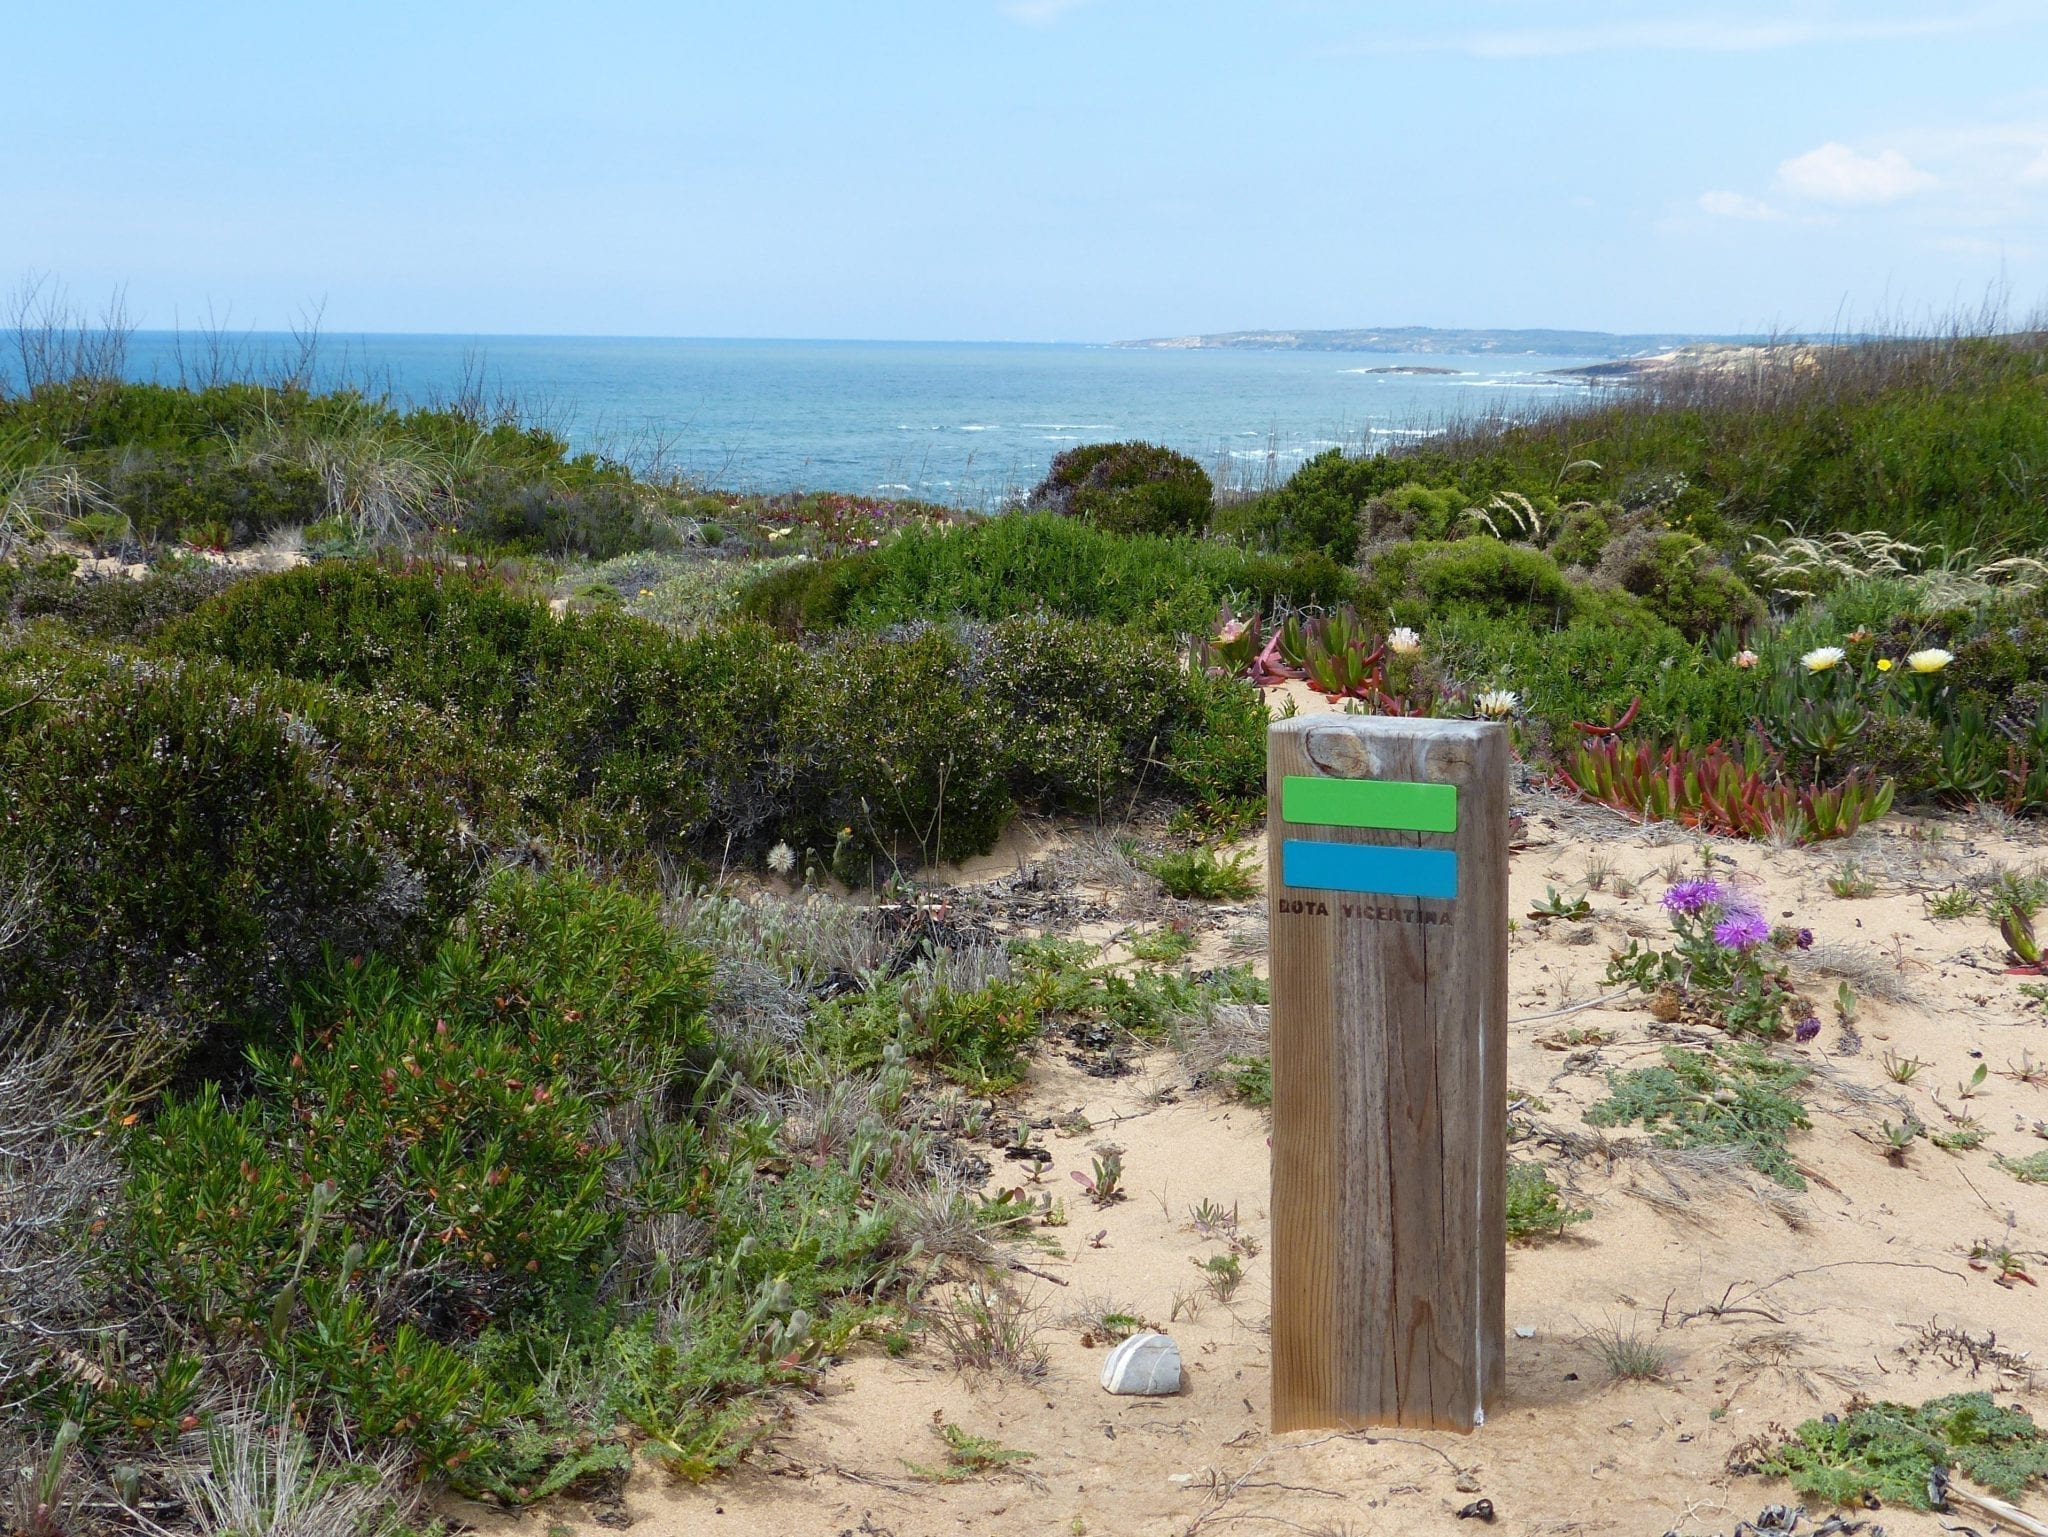 Rota Vicentina and Via Algarviana